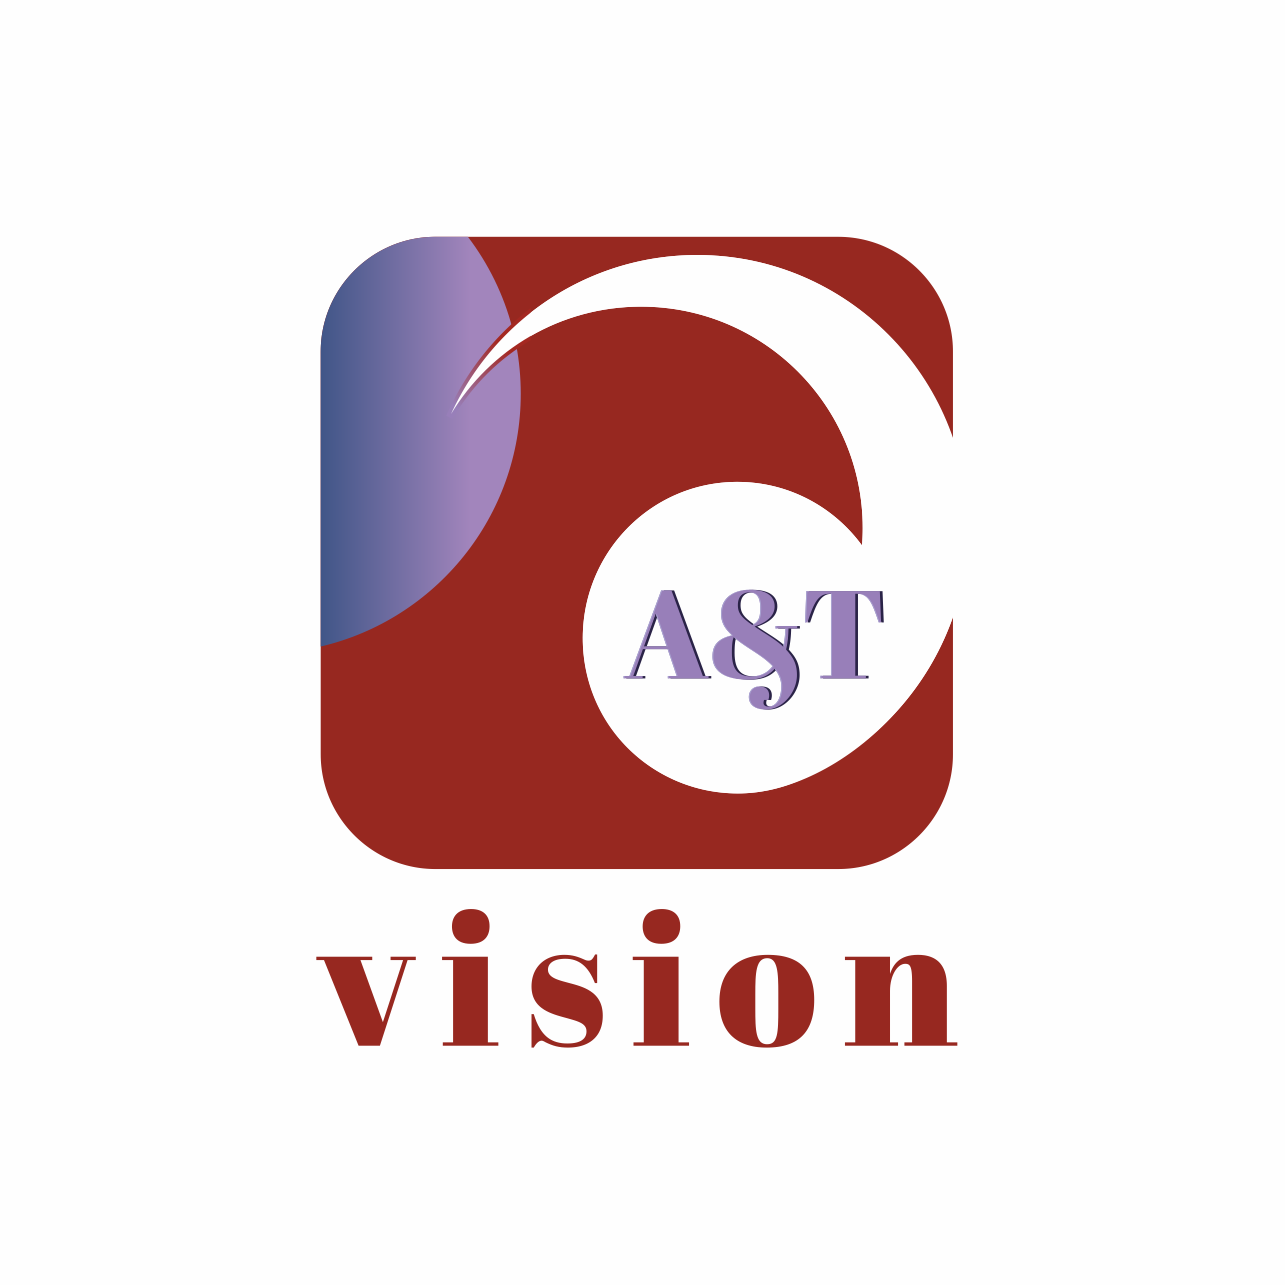 A&T Vision